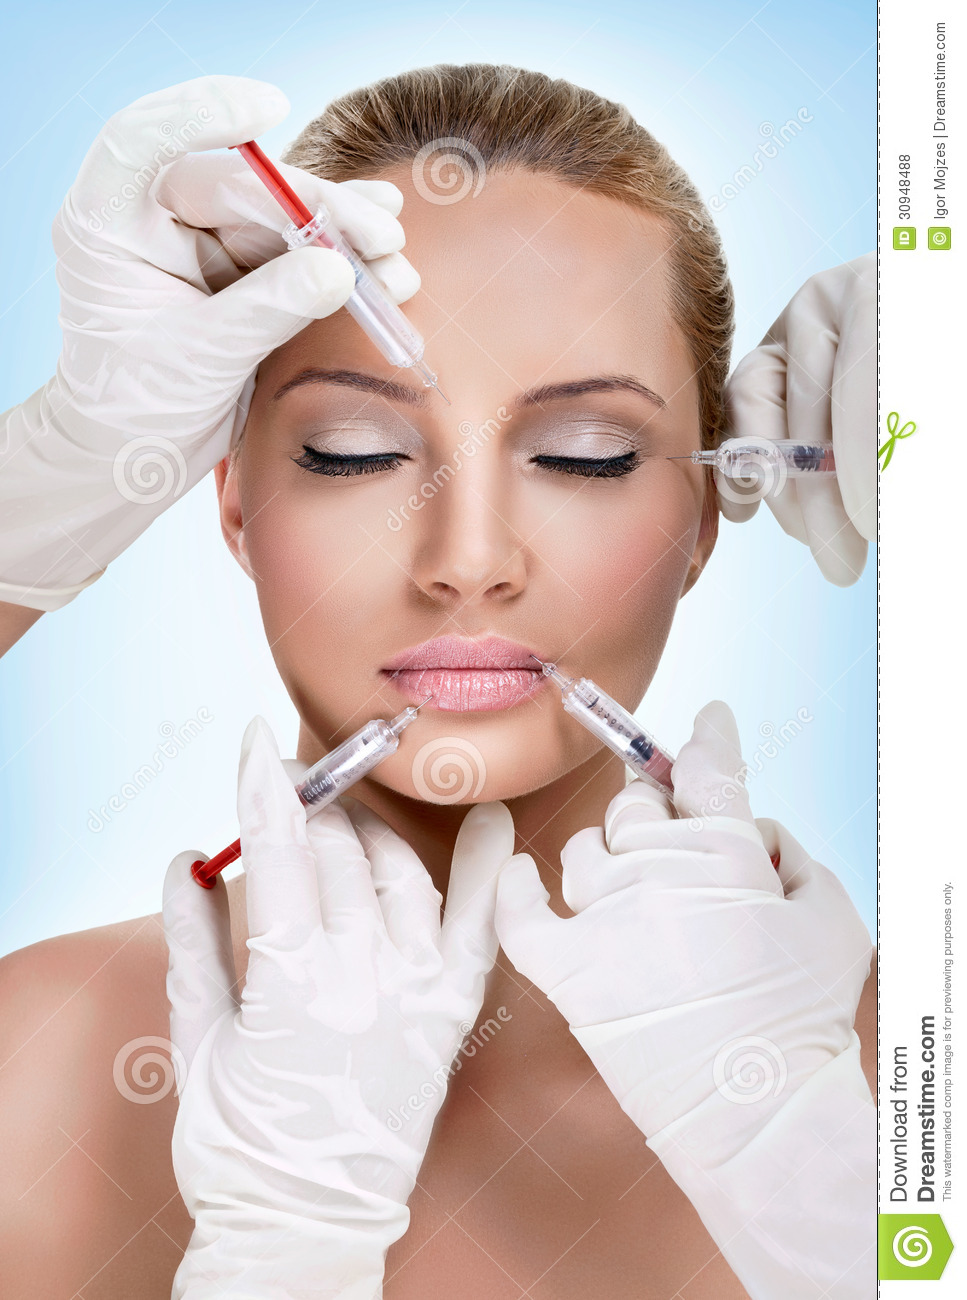 Injections Of Botox Stock Photo. Image Of Correction